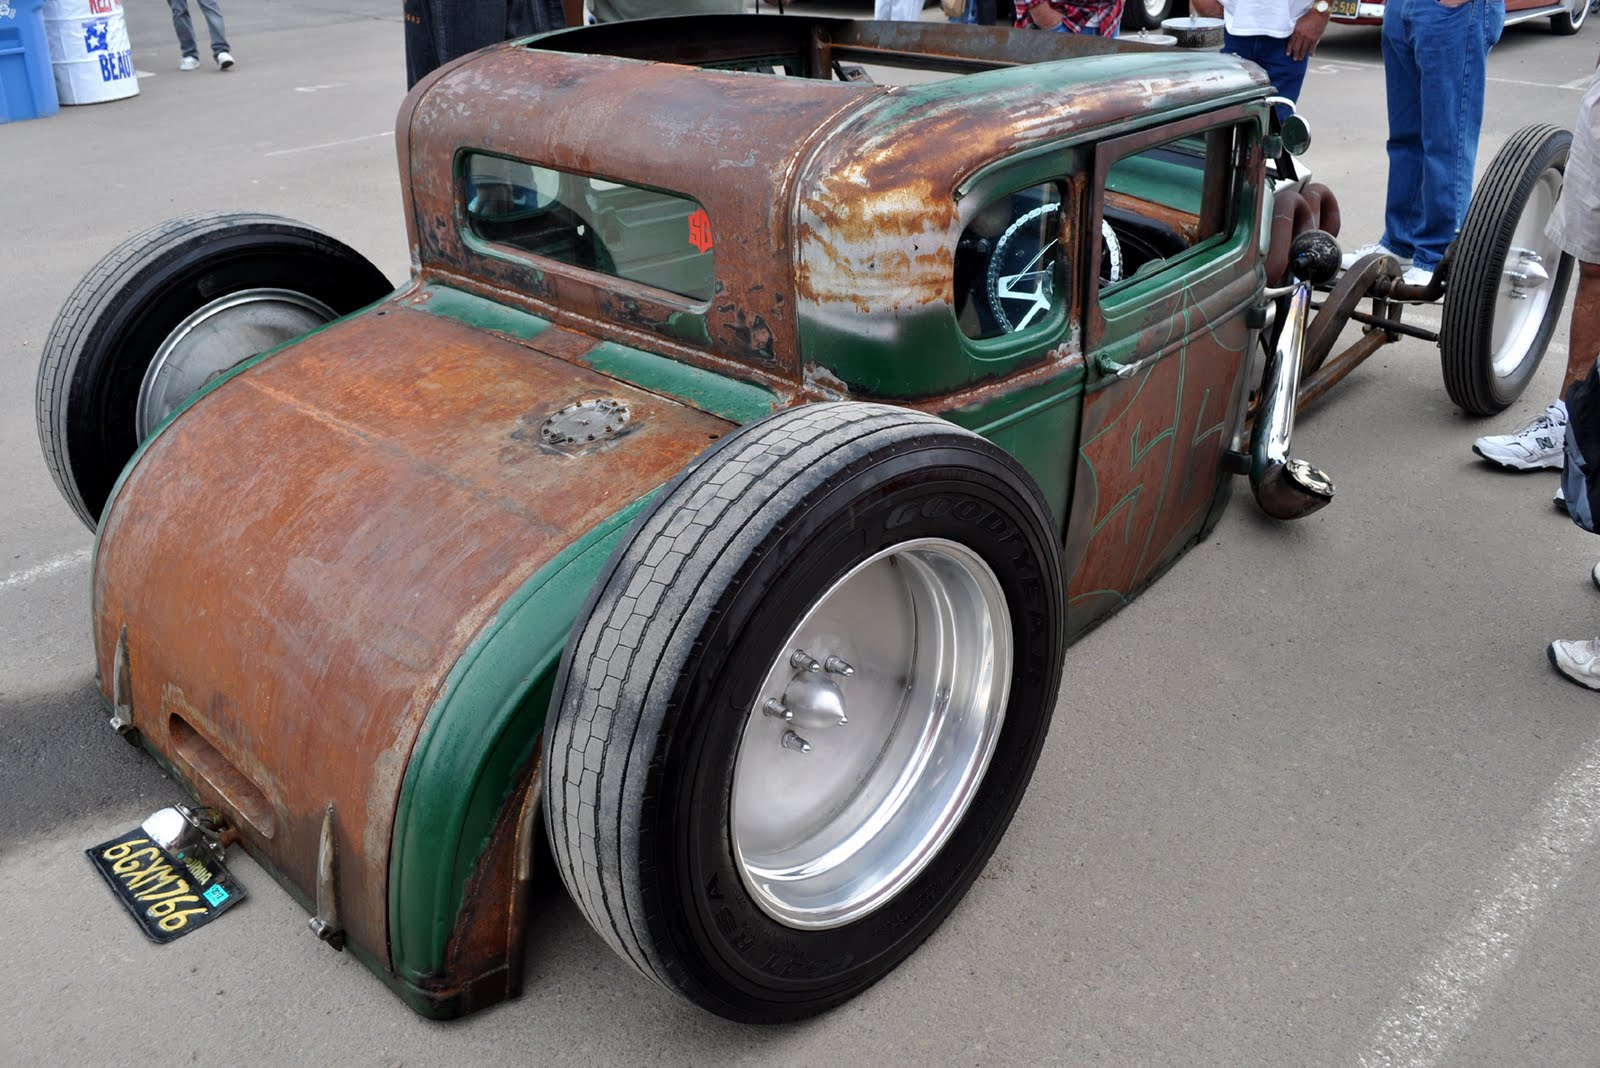 The SG rat rod.